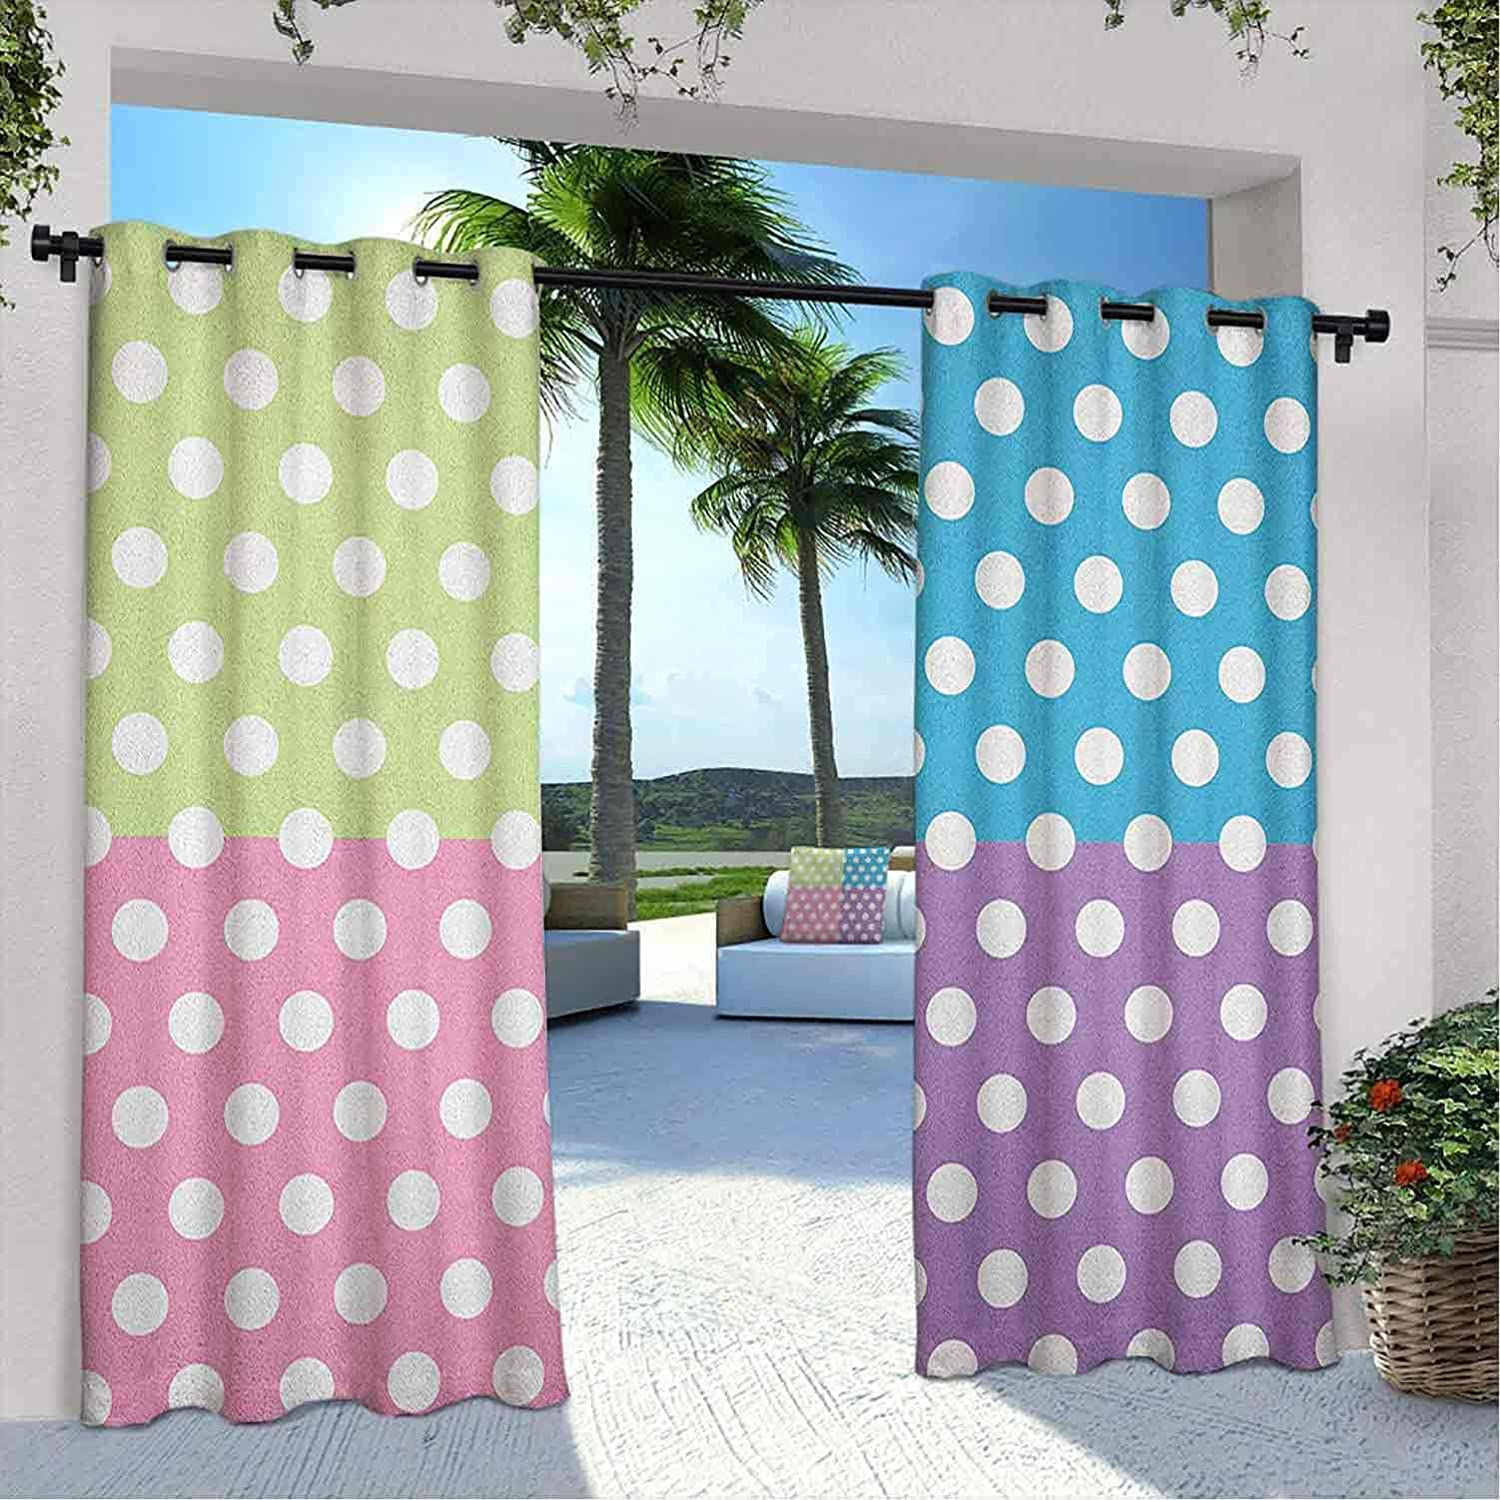 Outdoor Pavilion Polka Dots 2021new shipping free Curtain in Modern Same day shipping Patchw